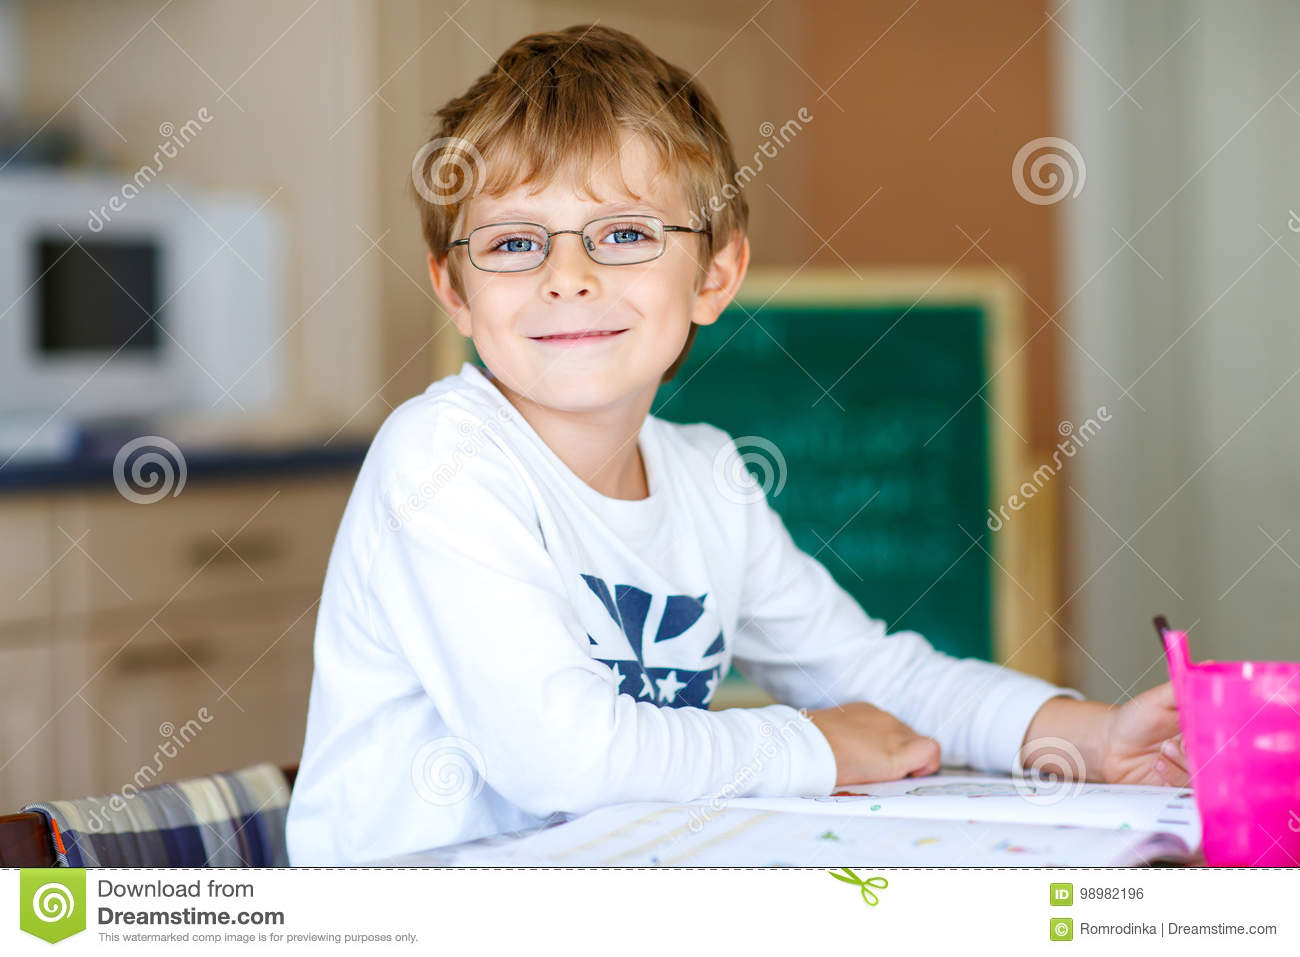 91c72ce5784 Portrait of cute happy school kid boy with glasses at home making homework. Little  child writing with colorful pencils